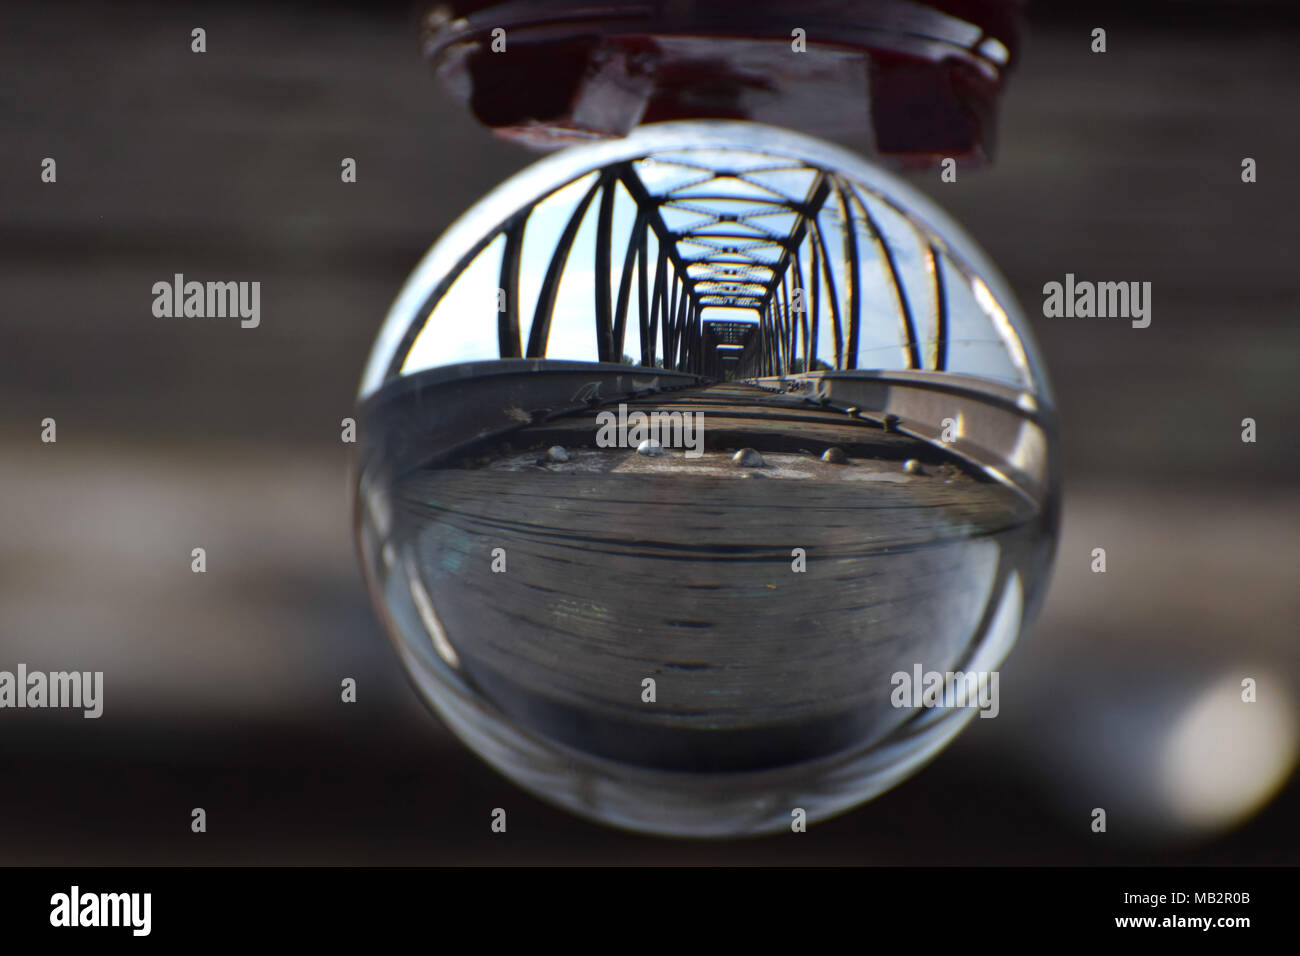 A railroad track and bridge seen through a crystal ball. A visual metaphor for vision, moving forward while staying on track and crossing bridges. - Stock Image